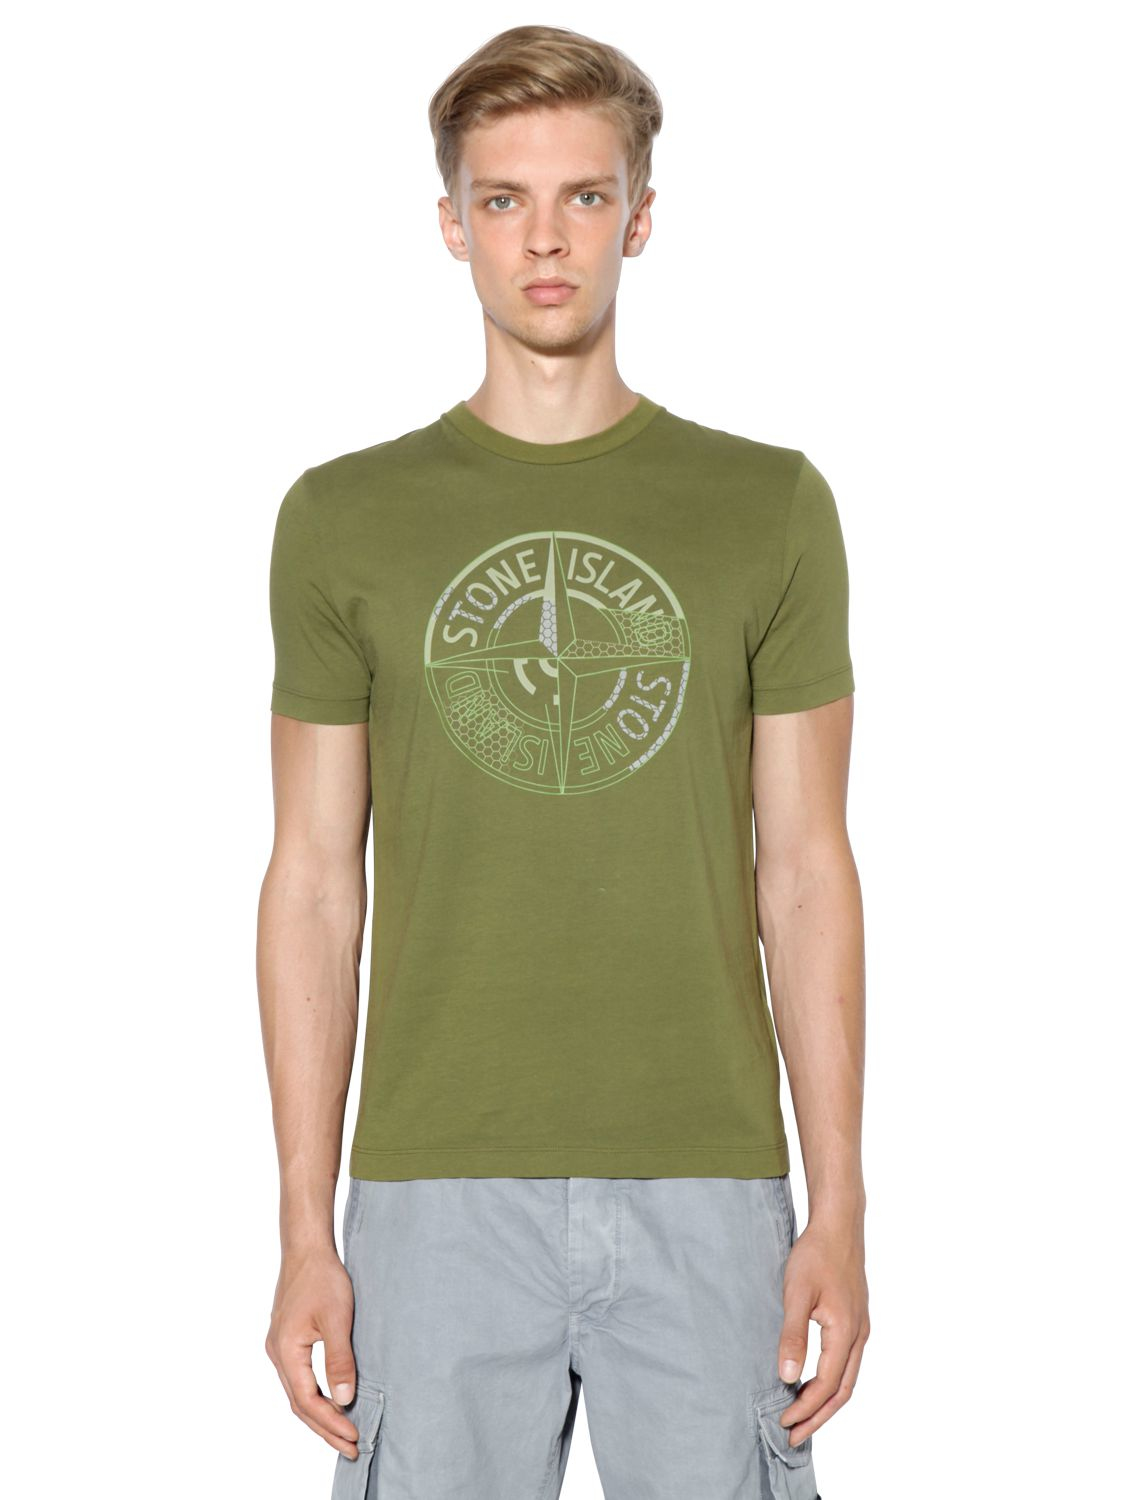 Logo-print cotton-jersey T-shirt Stone Island Pay With Visa Cheap Online Limited Edition 0wrGazz7K